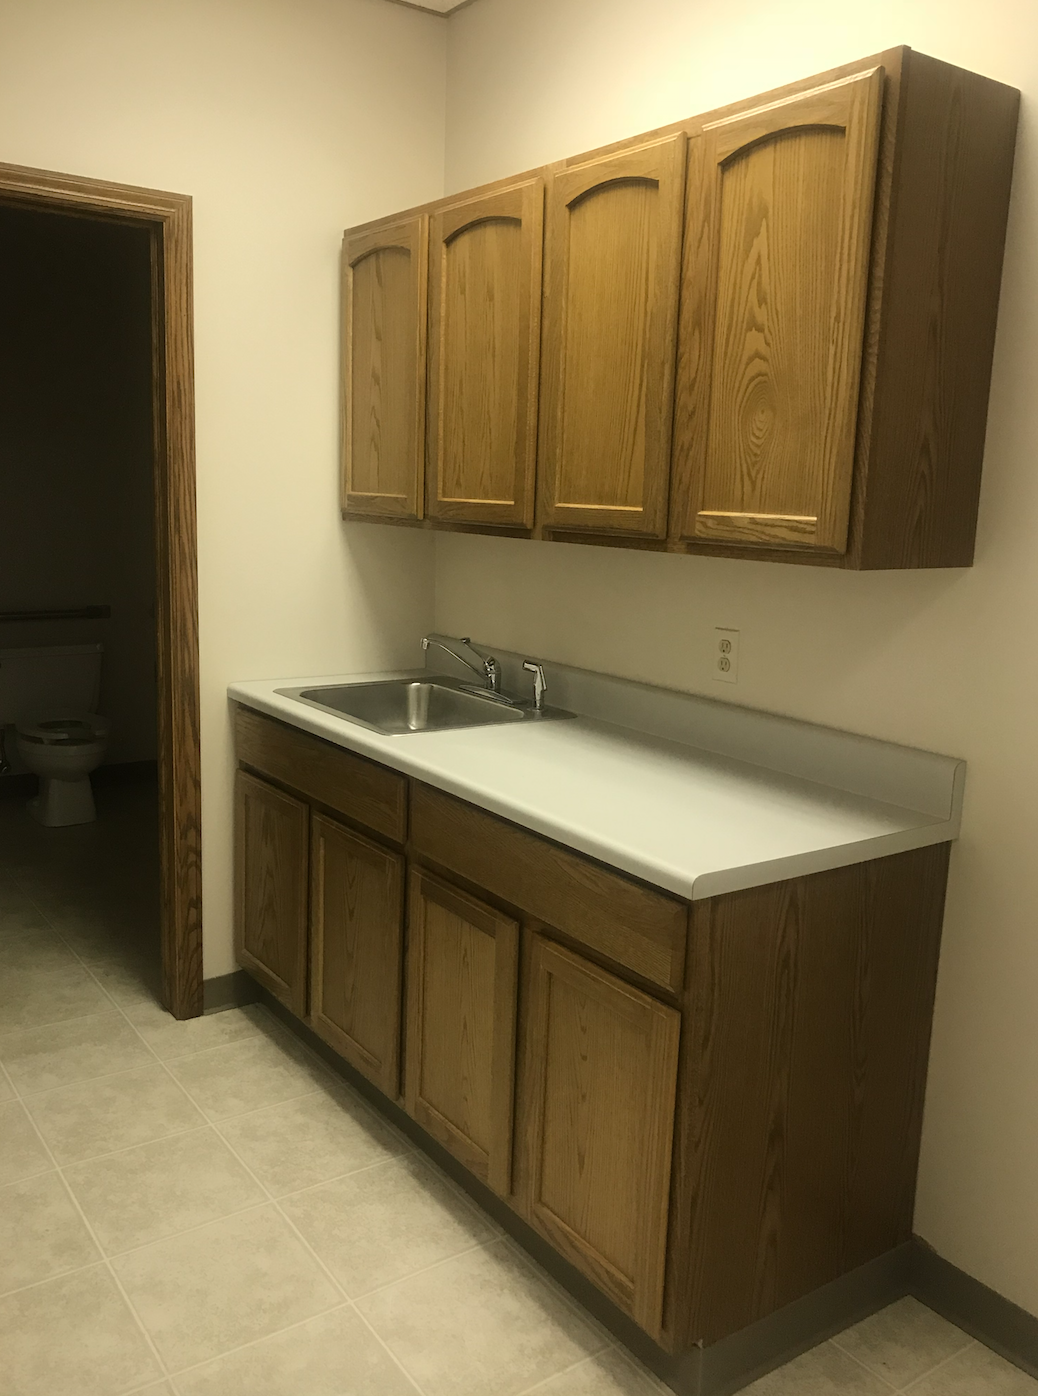 Before - The upper cabinets definitely had to go.